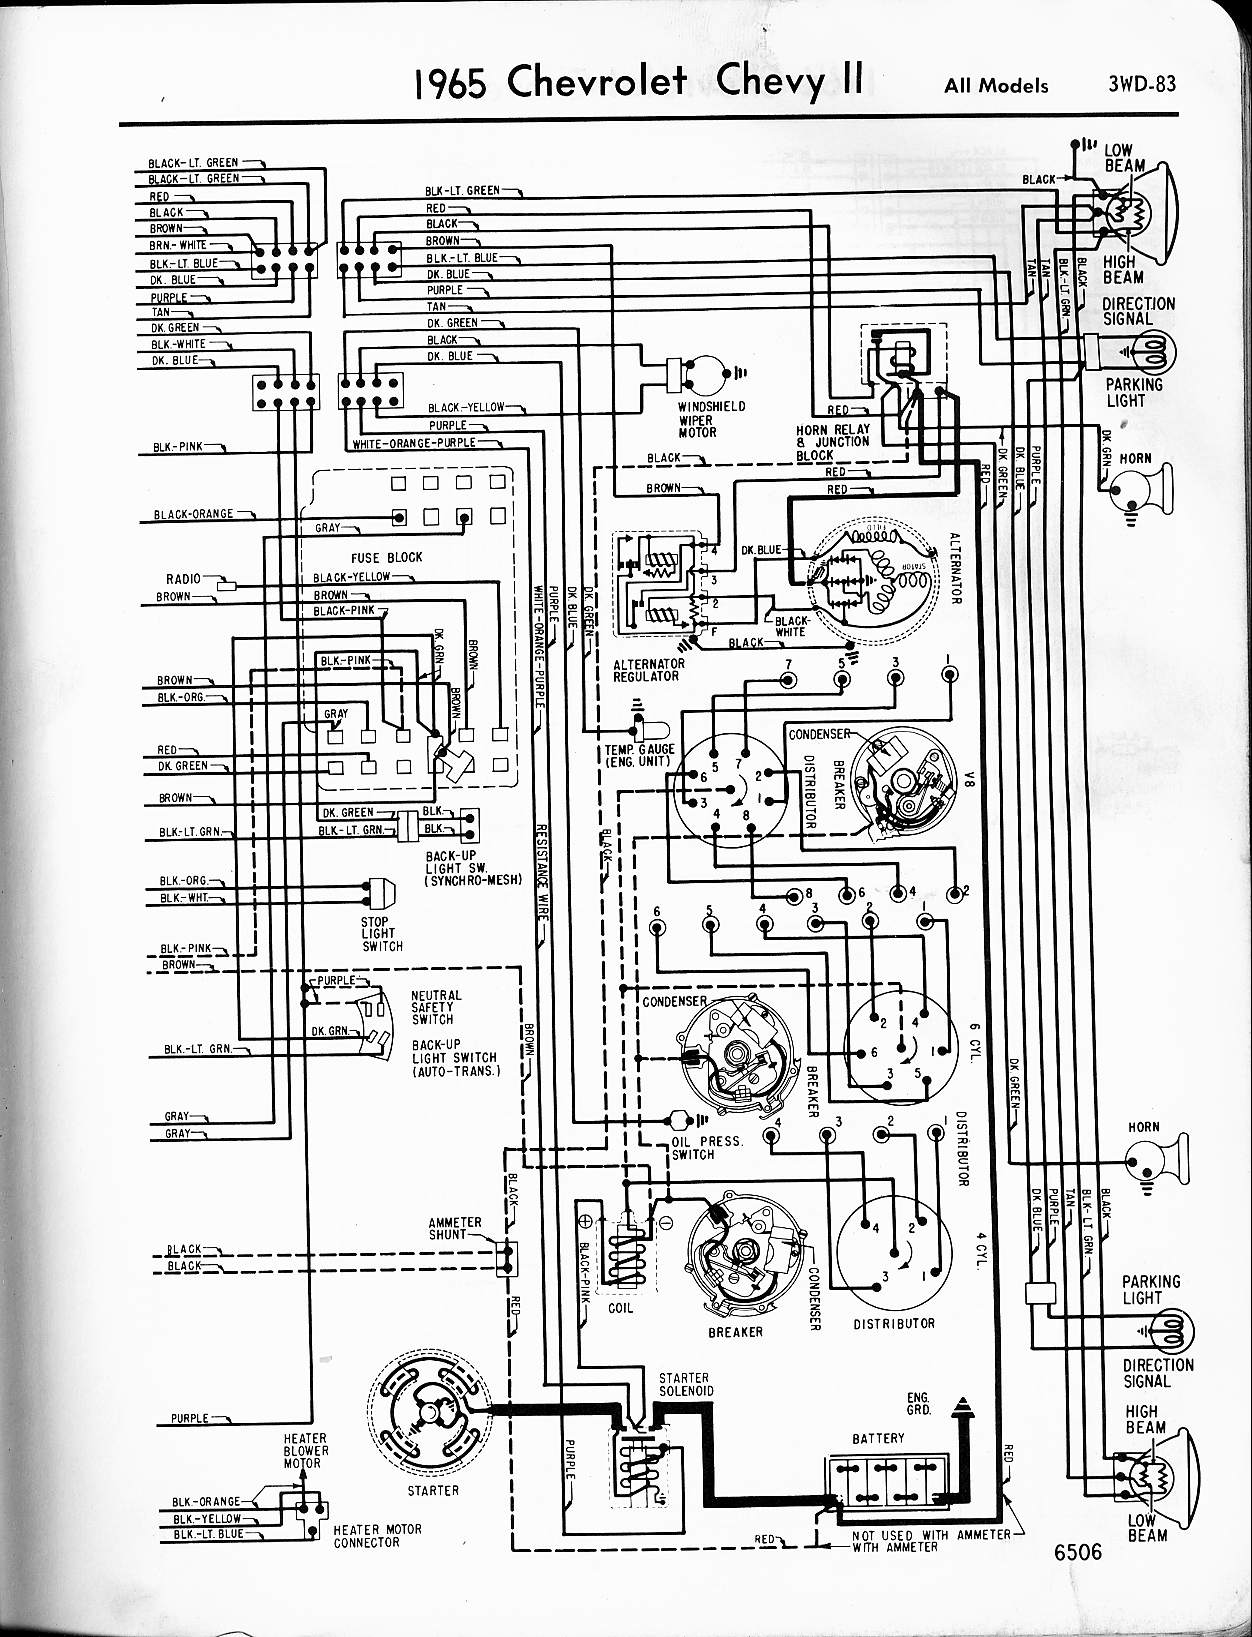 MWireChev65_3WD 083 chevy diagrams 1966 chevy c10 wiring diagram at alyssarenee.co